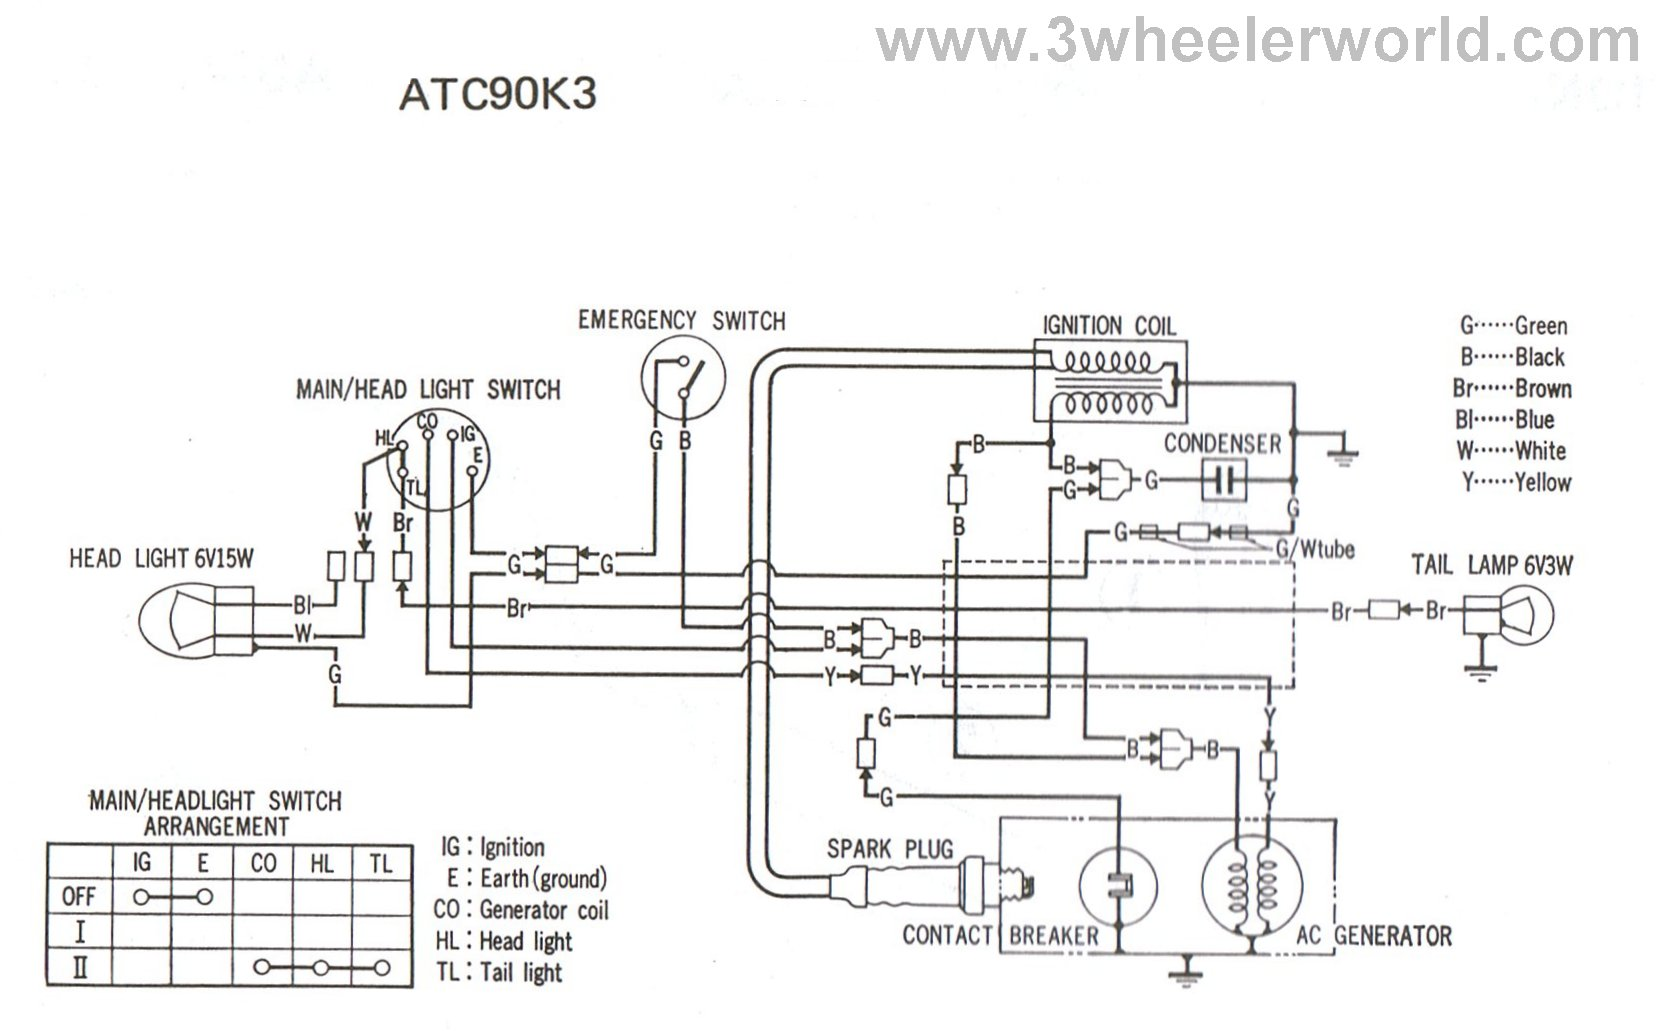 atc90 k3 factory diagram